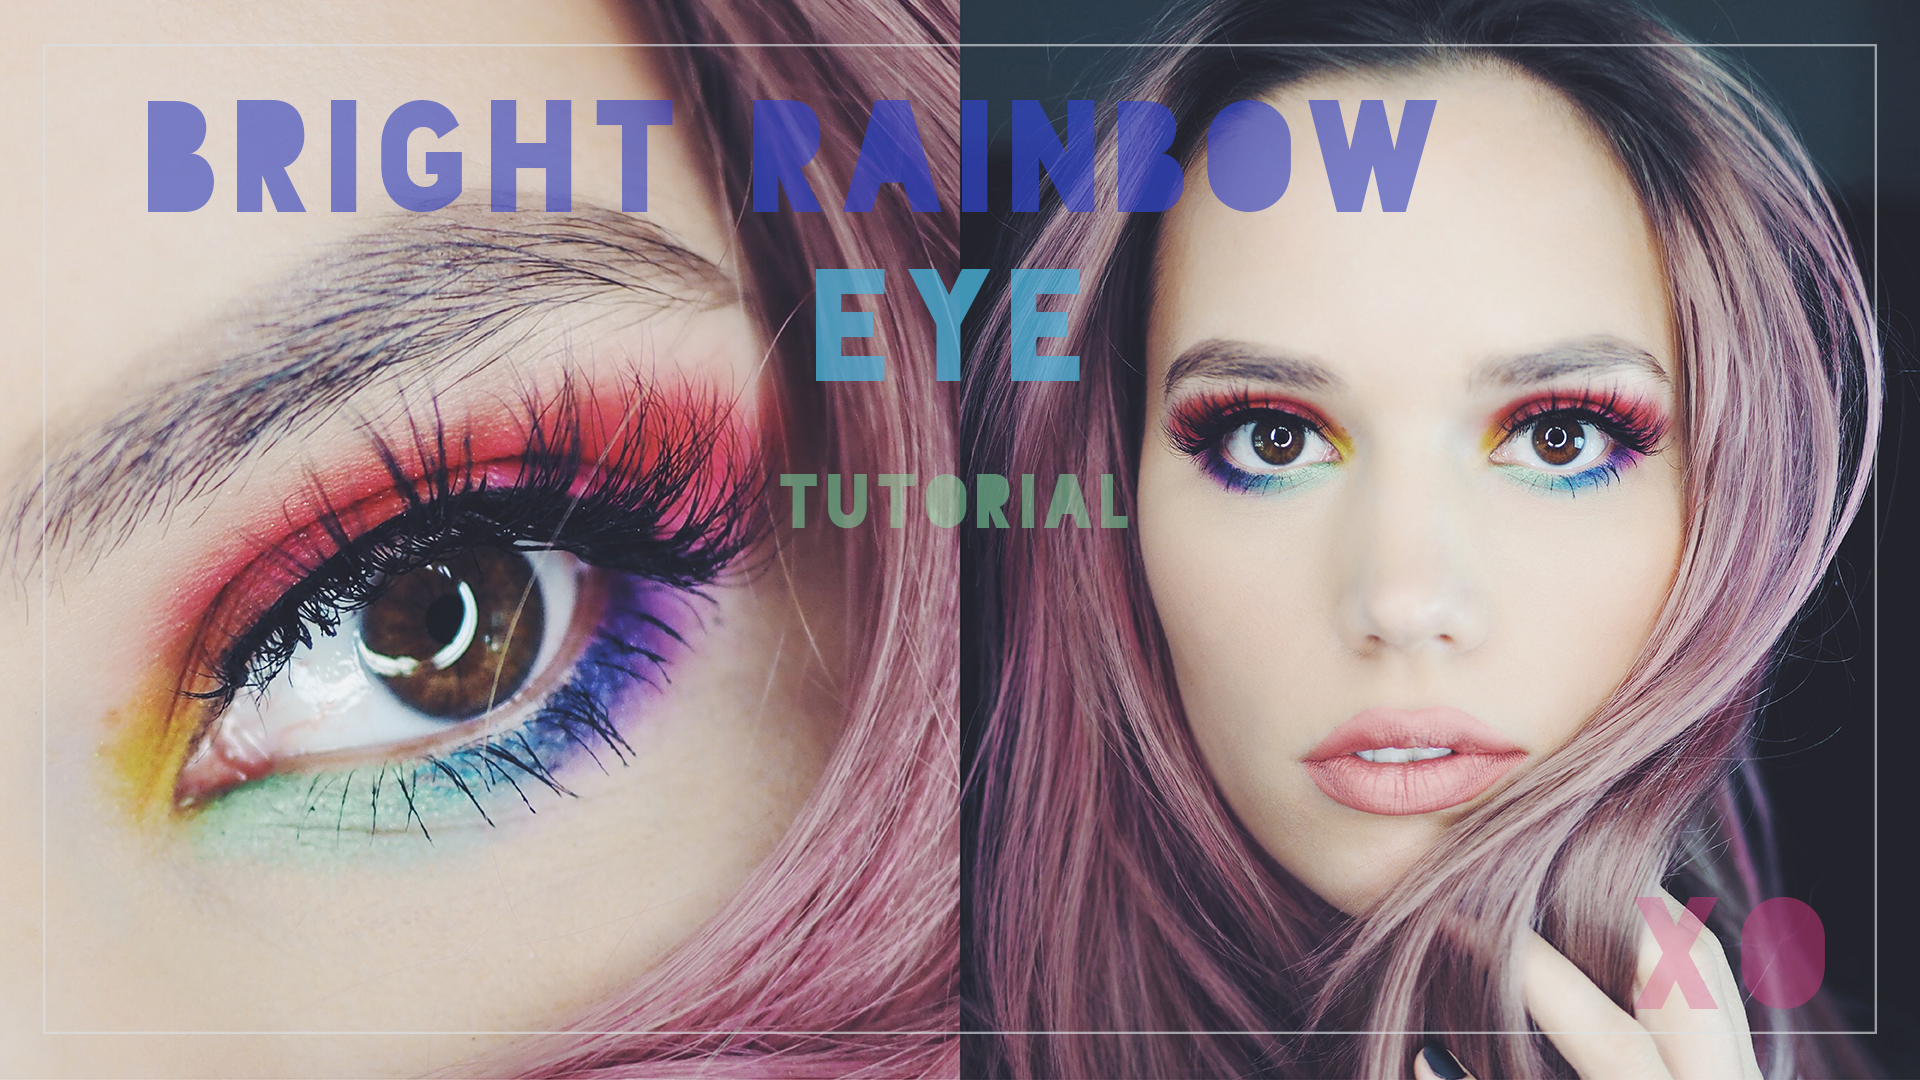 Bright rainbow eyes tutorial